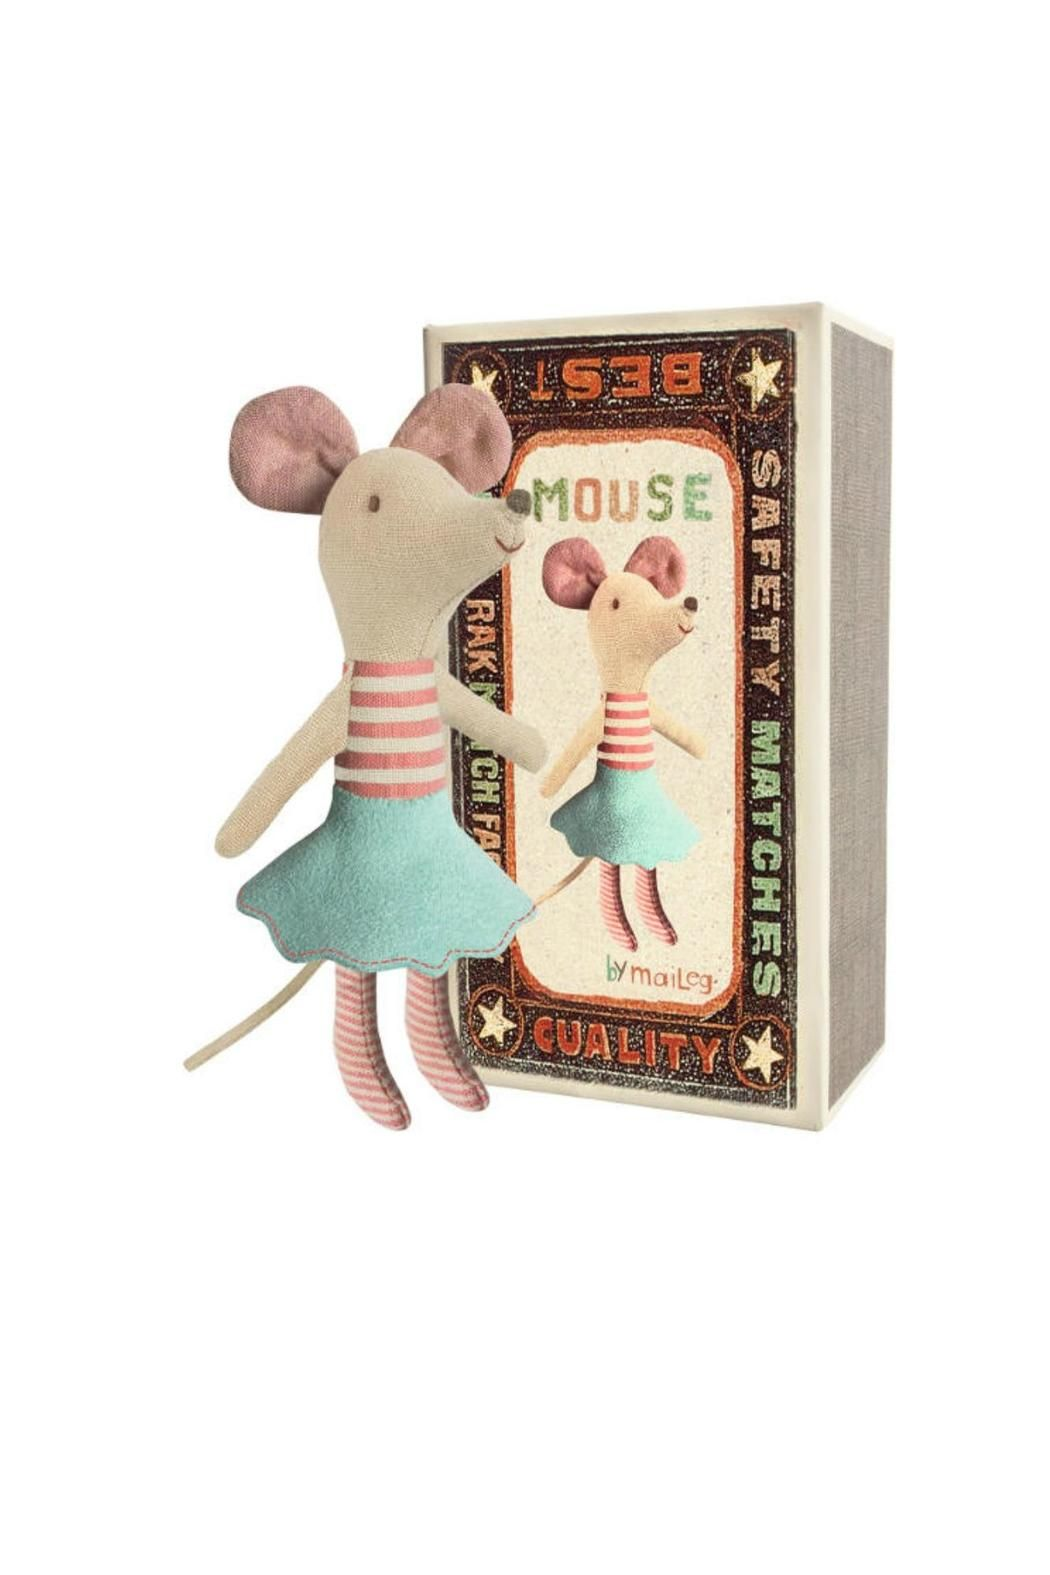 Maileg Matchbox Sister Mouse Mice Big And Boutique Sturdy A Set Of Lovely With Rosy Ears Delightful Smile Matching Match Box Filled Colorful Beddings The Is Decorated Whimsical